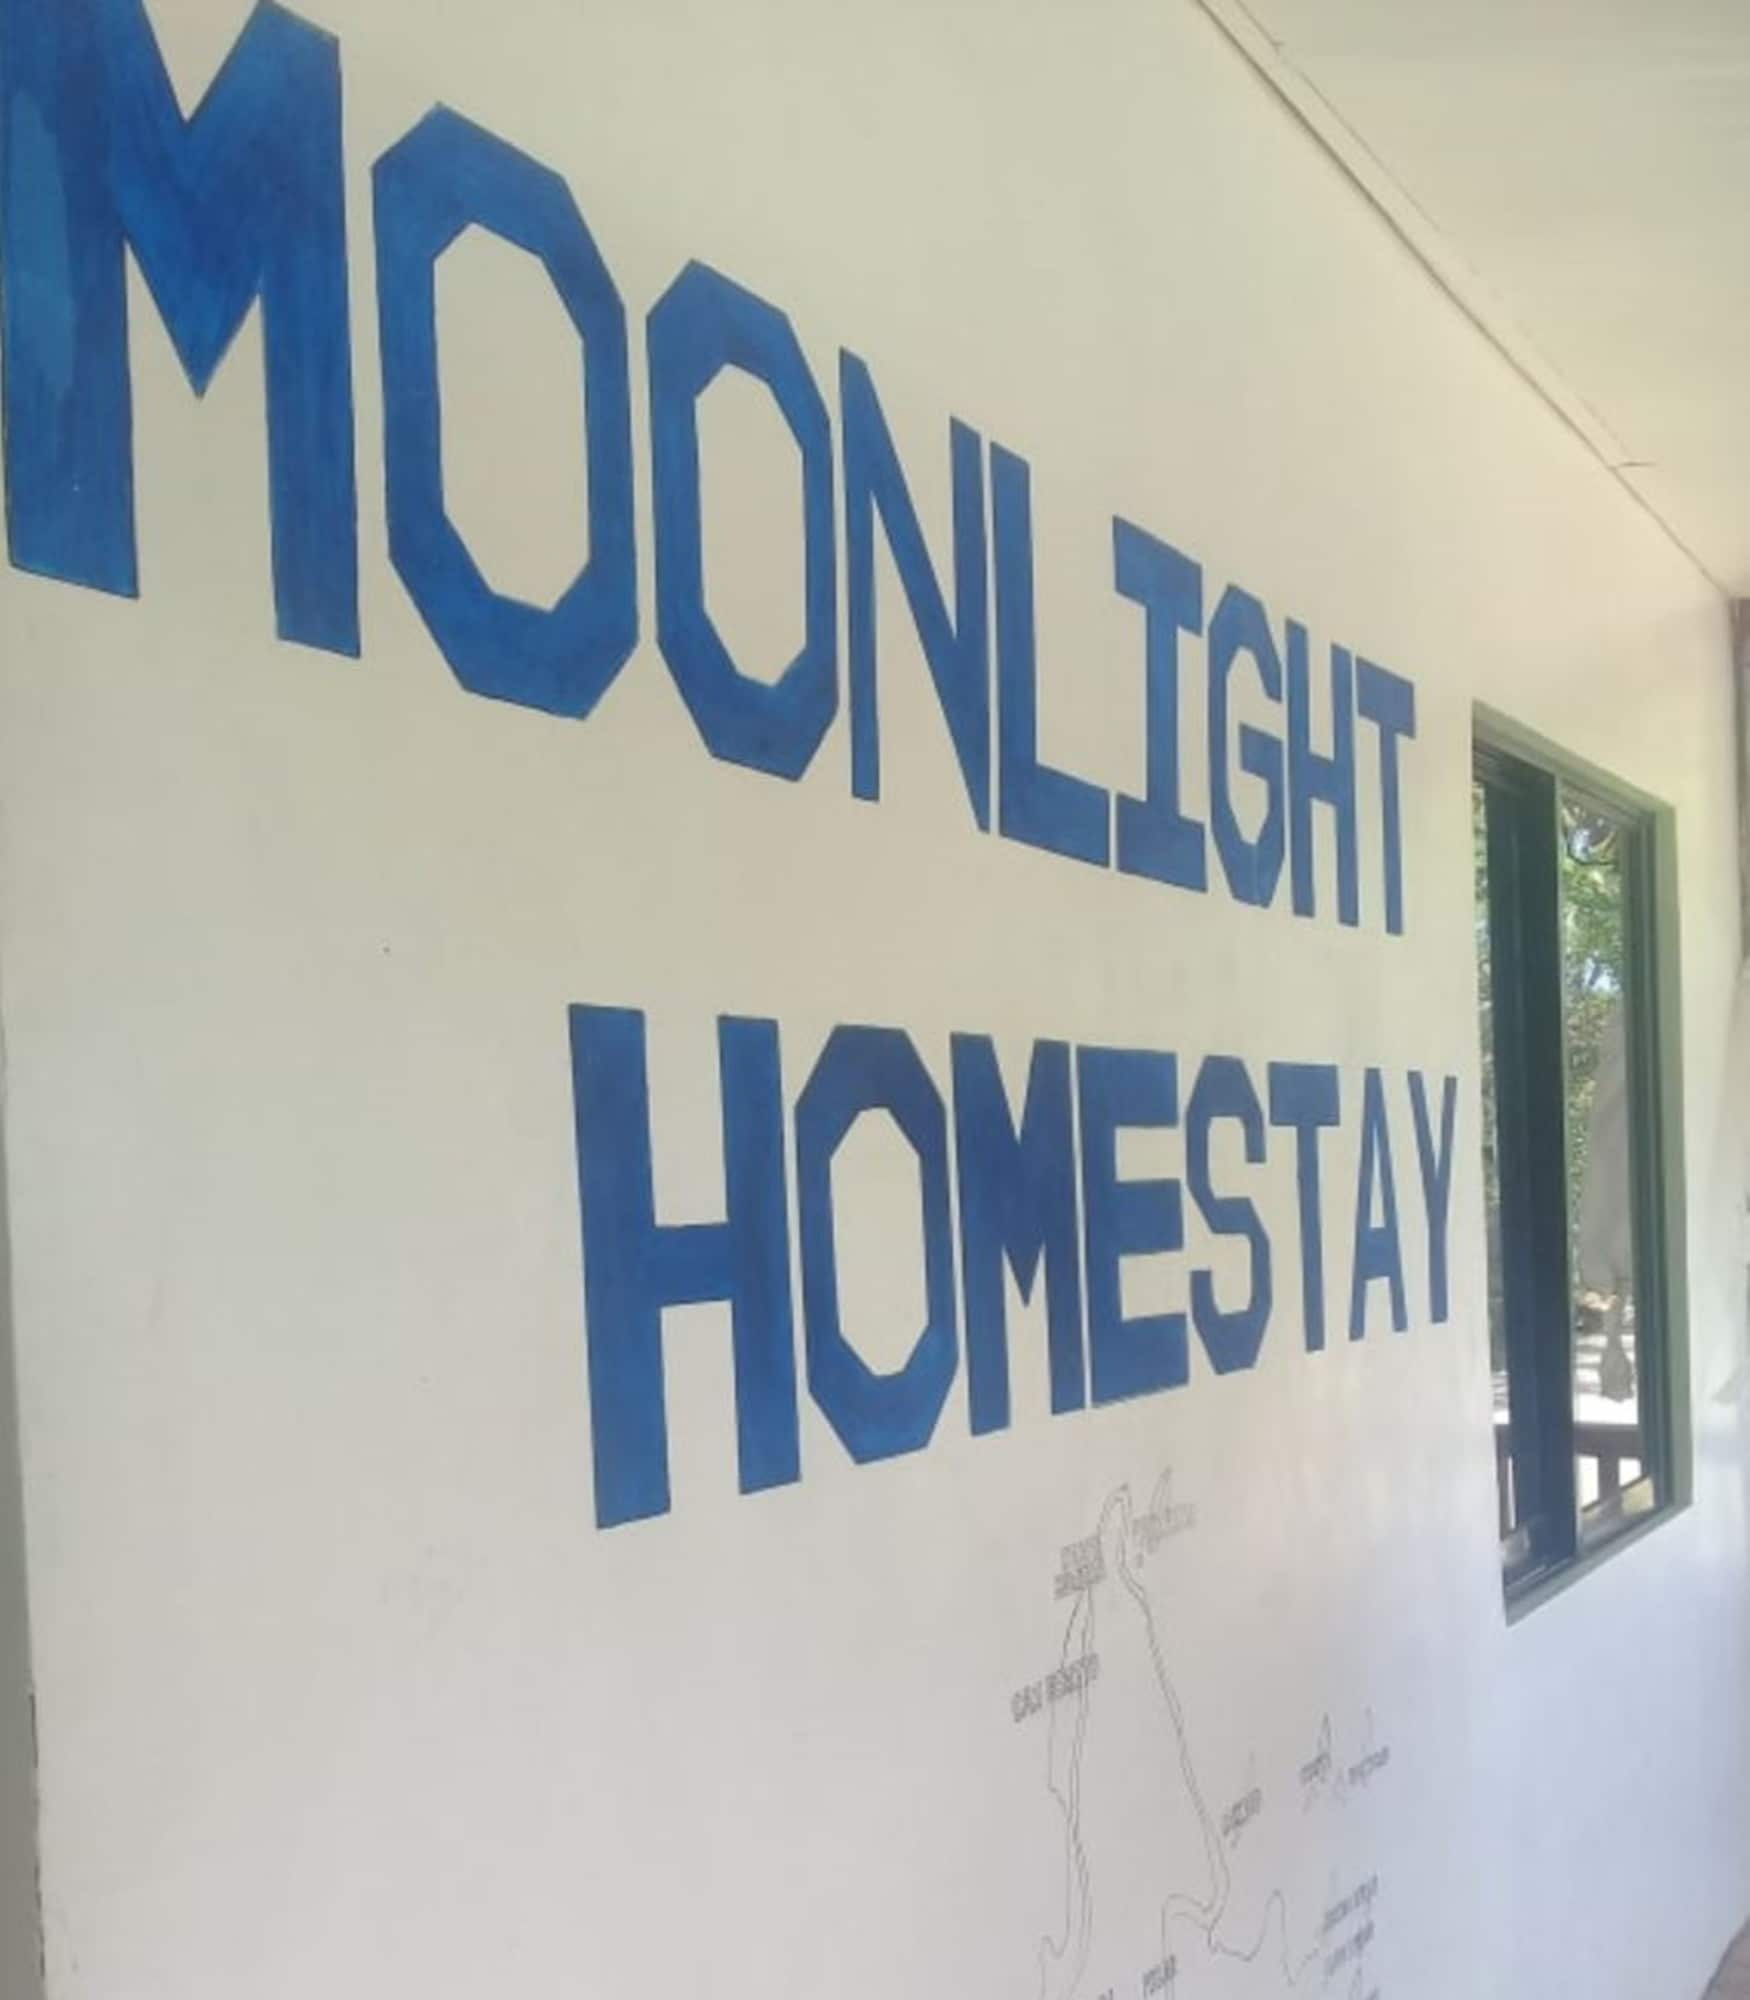 Moonlight Homestay, General Luna